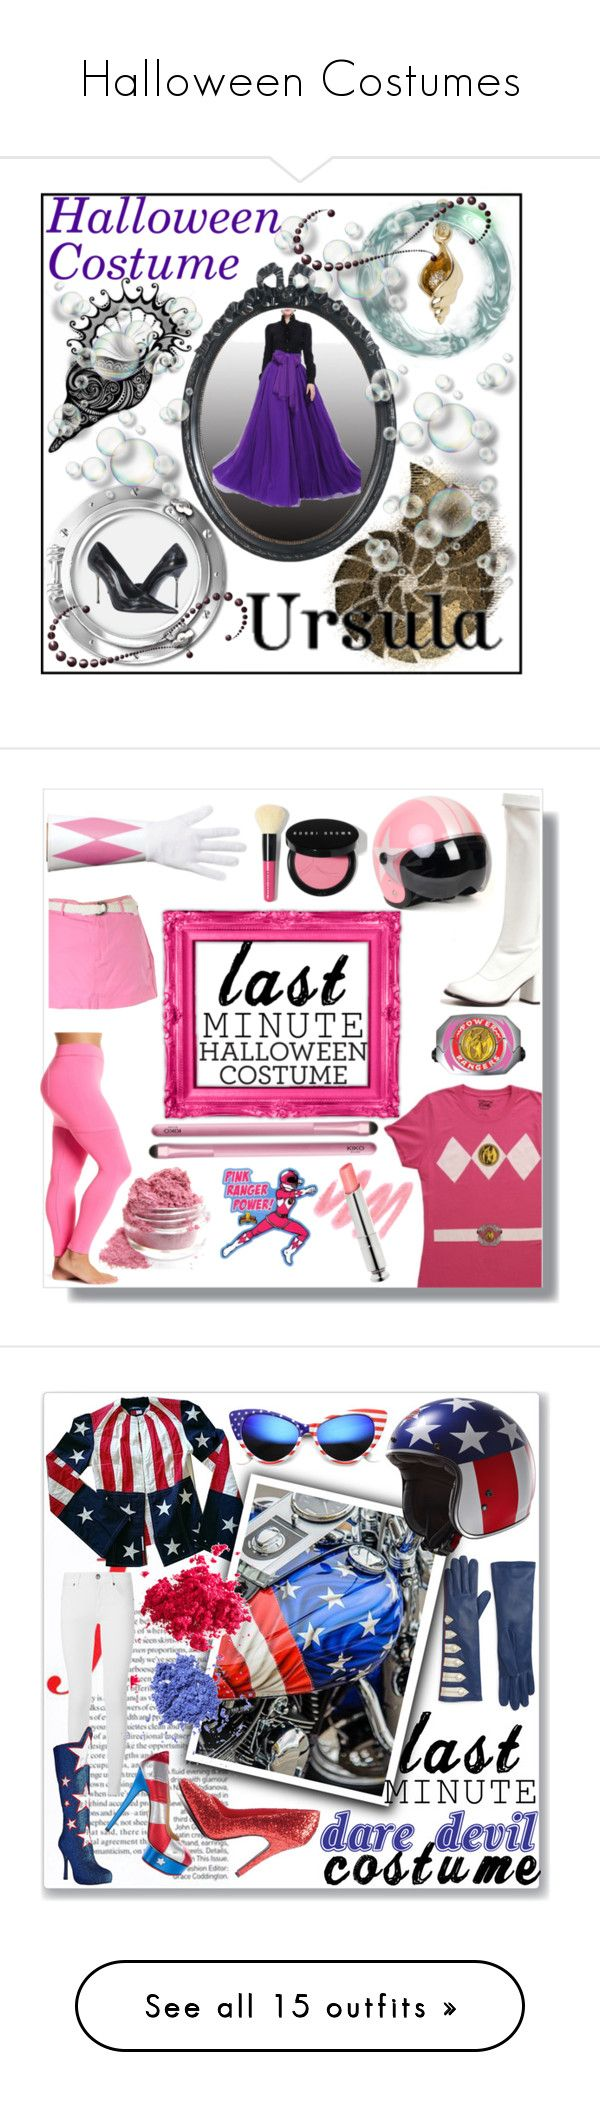 Halloween Costumes by amber-south-brink on Polyvore featuring Links of London, halloweencostumes, lastminutecostume, Magid, Abercrombie & Fitch, Power Rangers, Bobbi Brown Cosmetics, Burberry, AGNELLE and Ellie Shoes